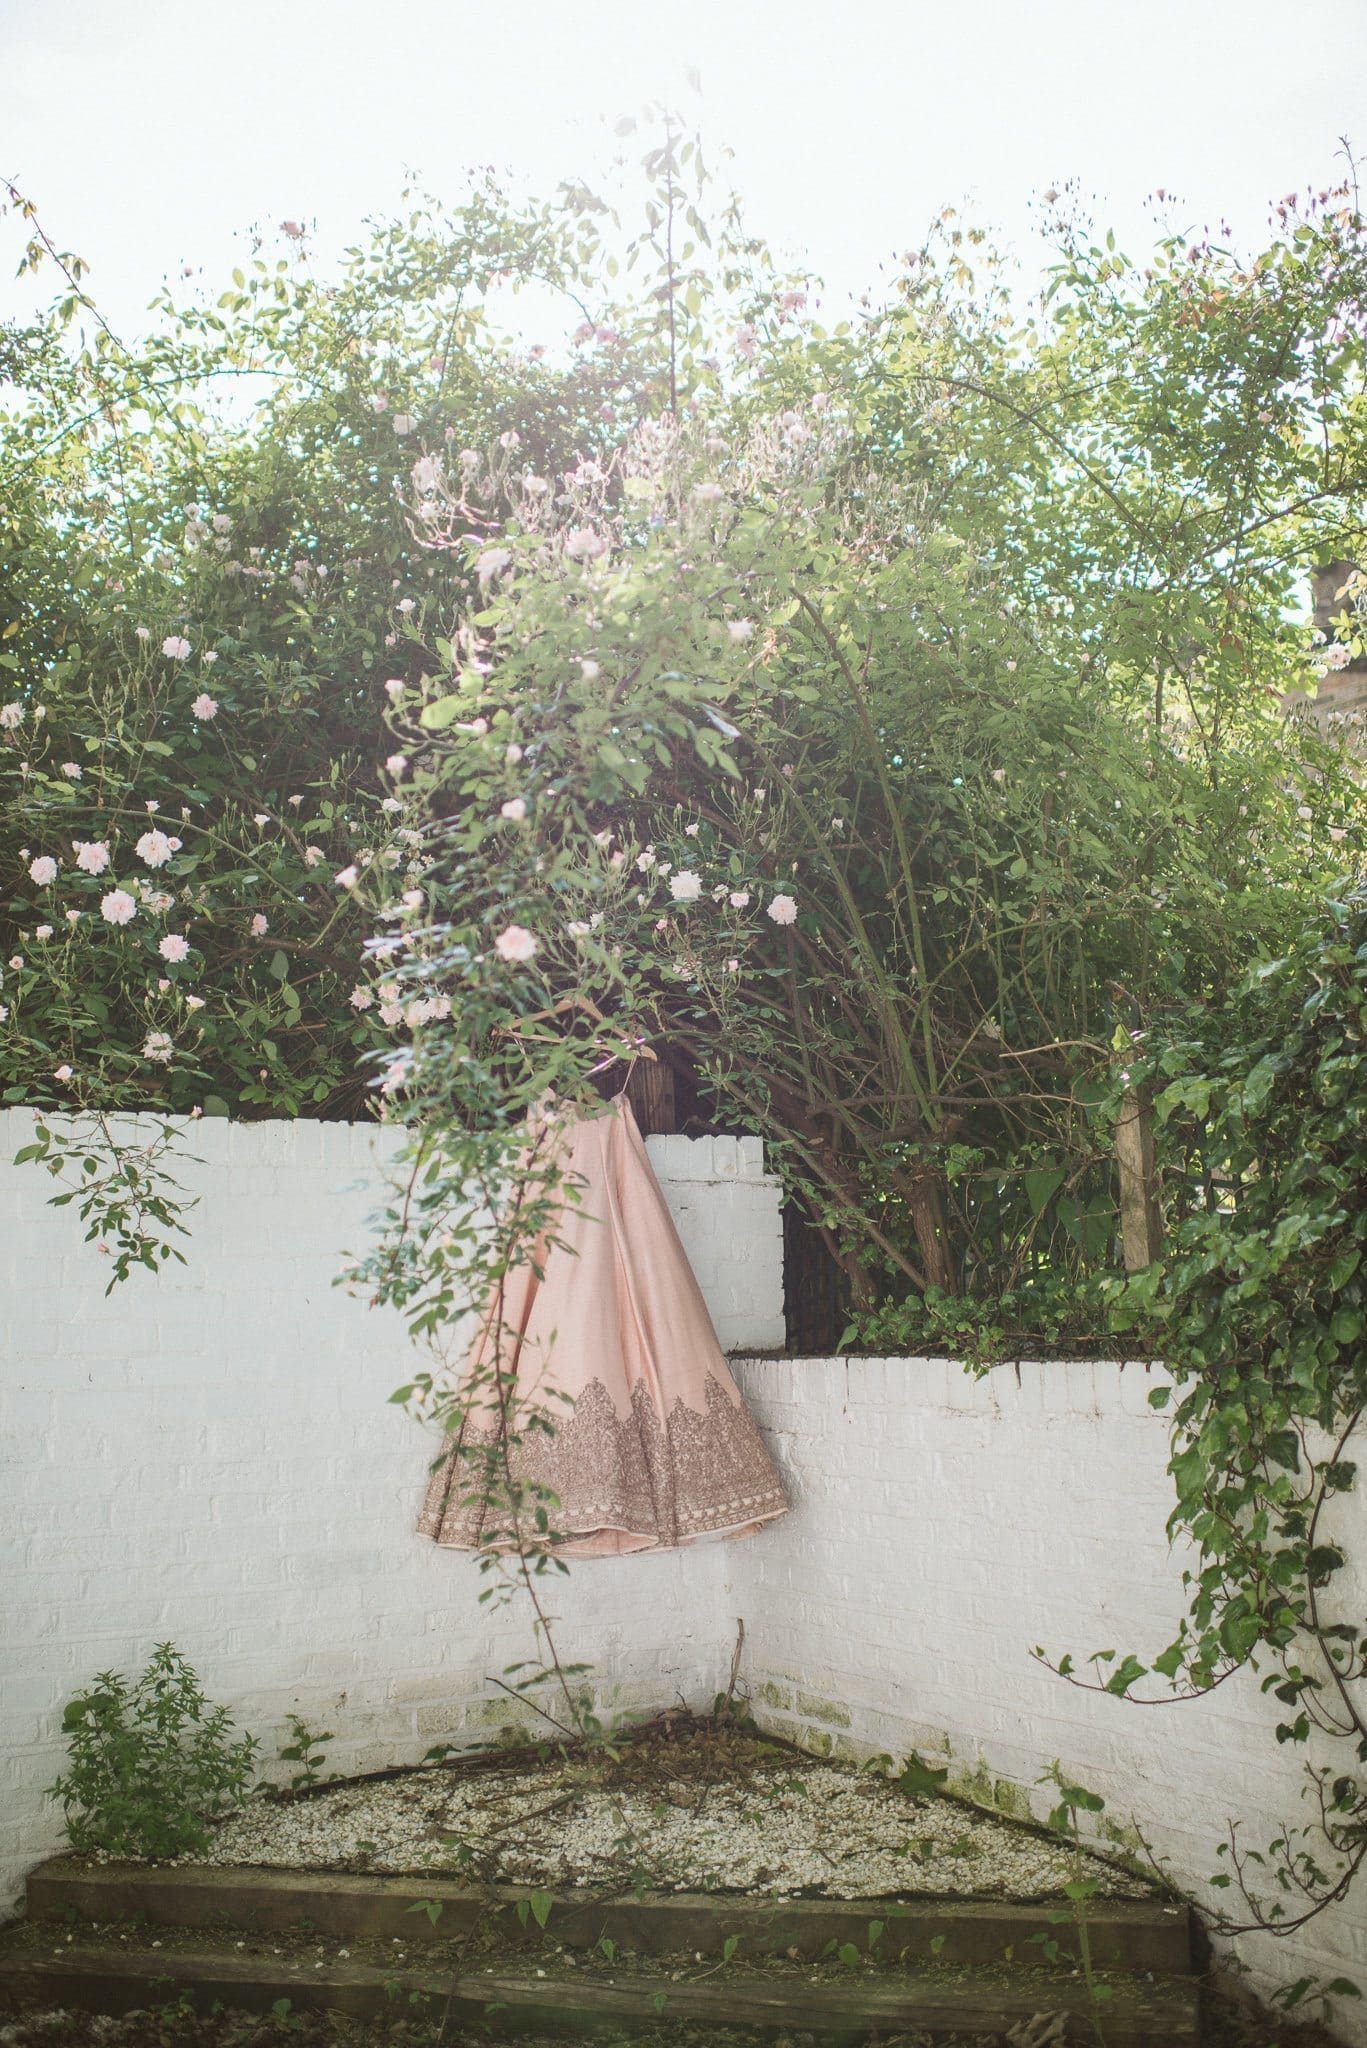 Sorayya's peach gown hangs in the garden with roses blossoming in front of it